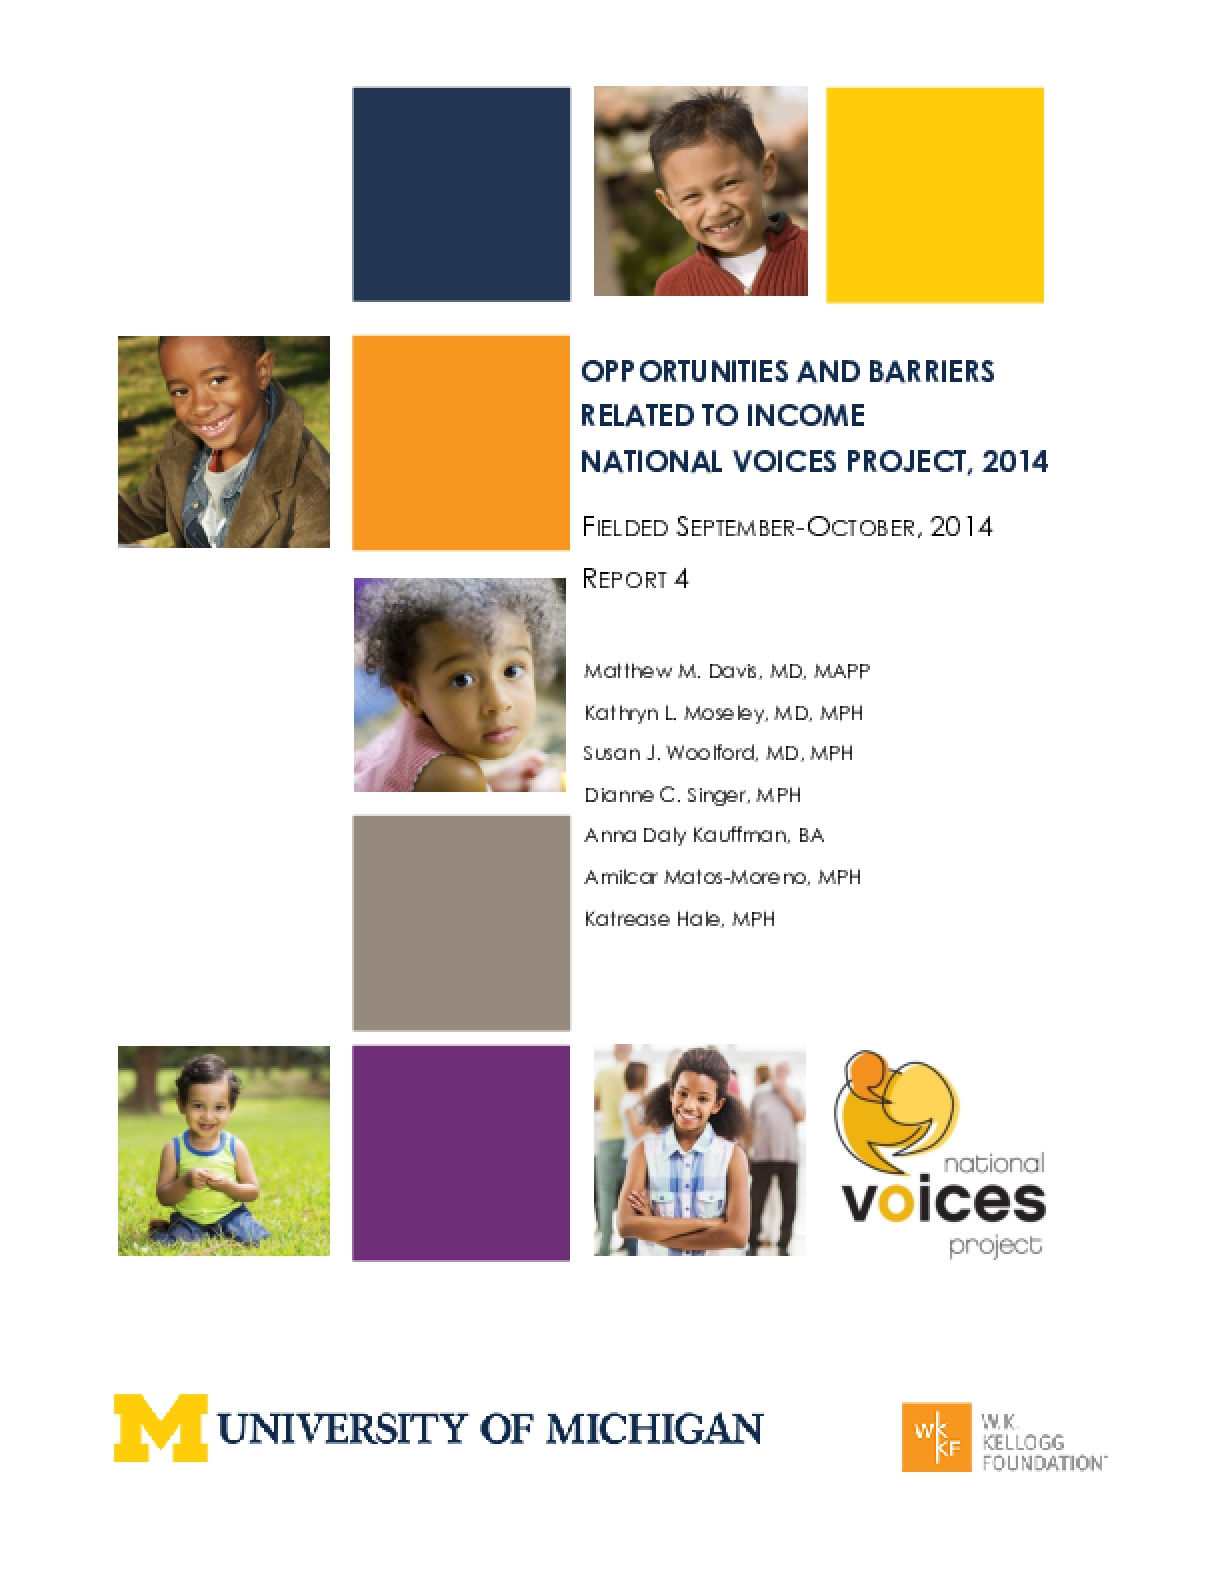 Opportunities and Barriers Related to Income (NVP 2014, Report 4)